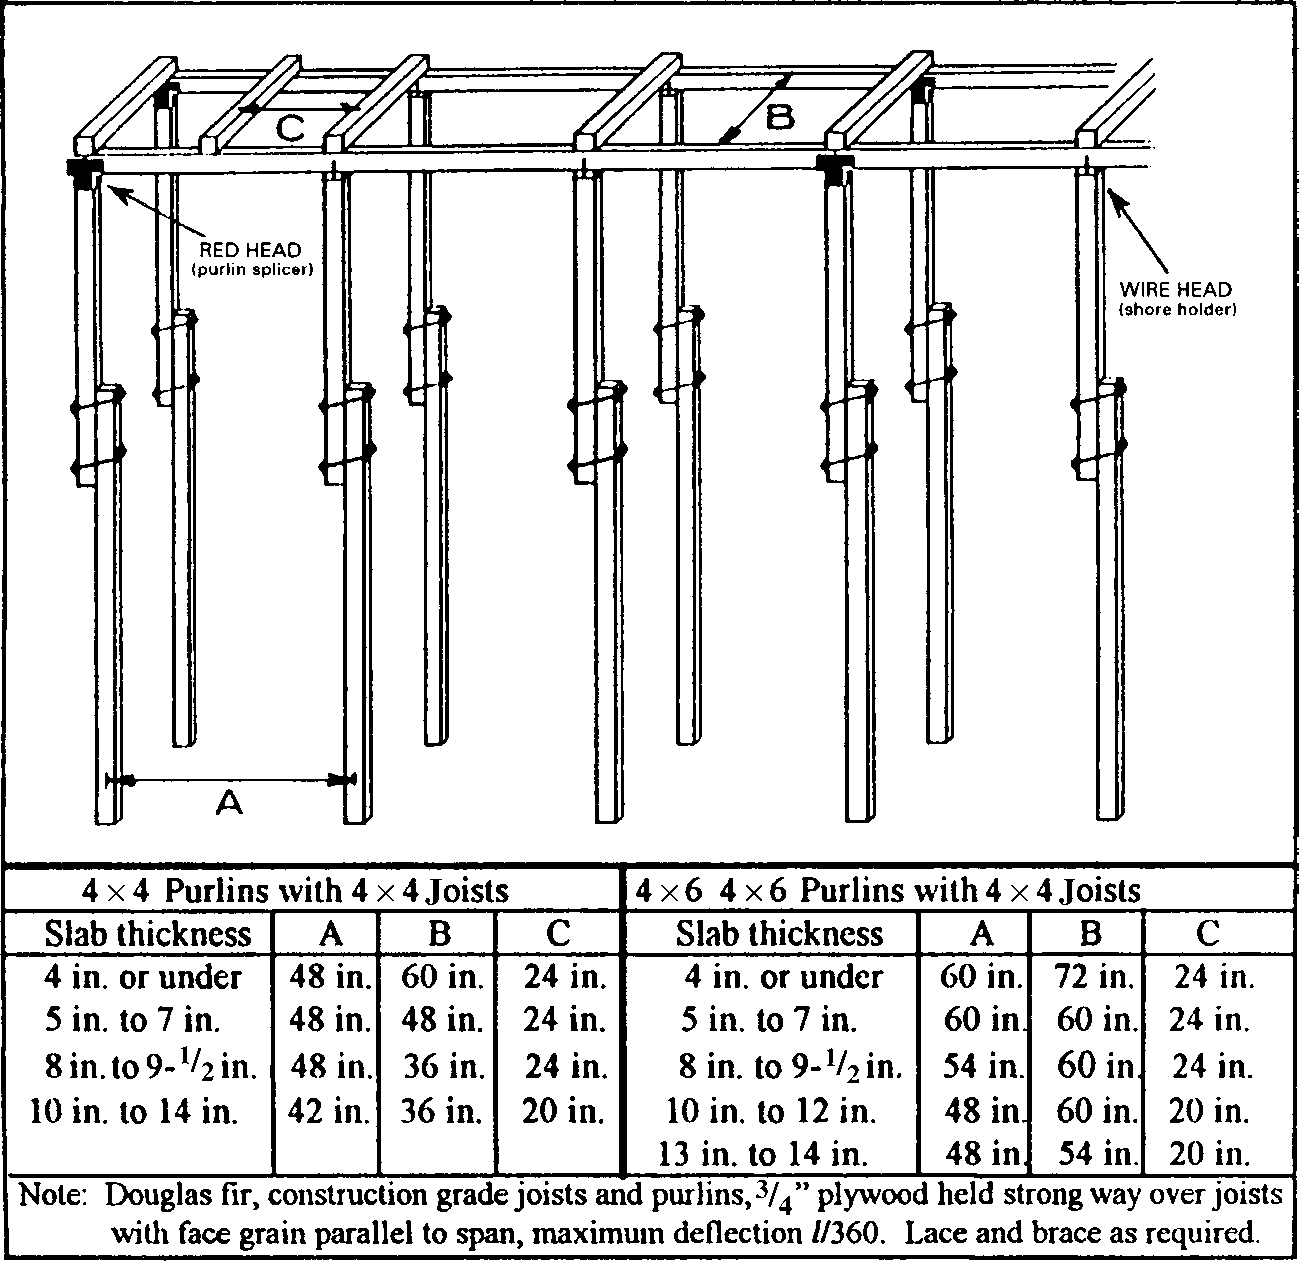 FIGURE :2 Ellis shoring system. (Source: Ellis Construction Specialties, Ltd.)